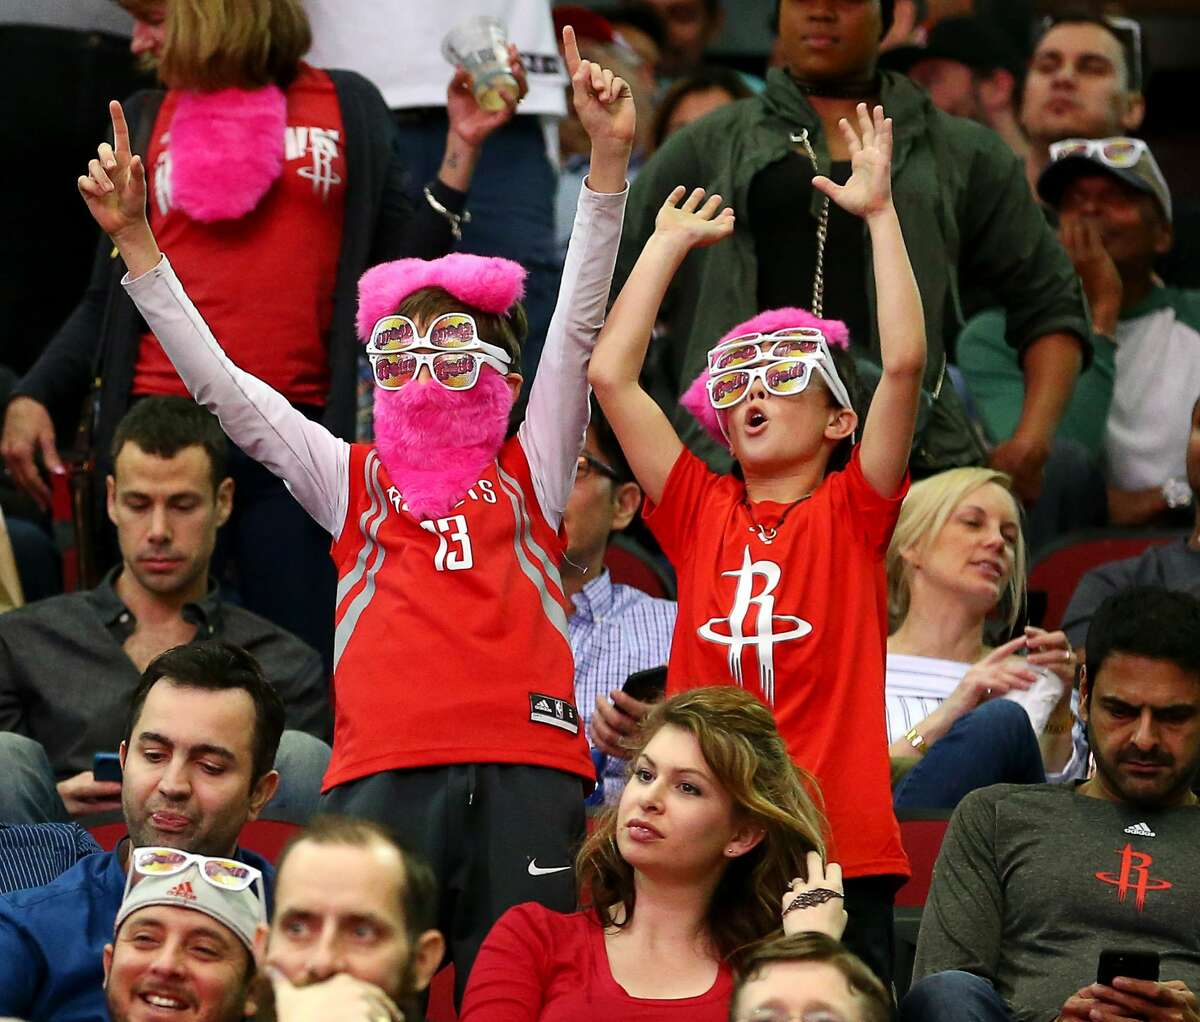 Two young fans cheer during the fourth quarter of an NBA game at the Toyota Center Friday, Jan. 20, 2017, in Houston. ( Jon Shapley / Houston Chronicle )